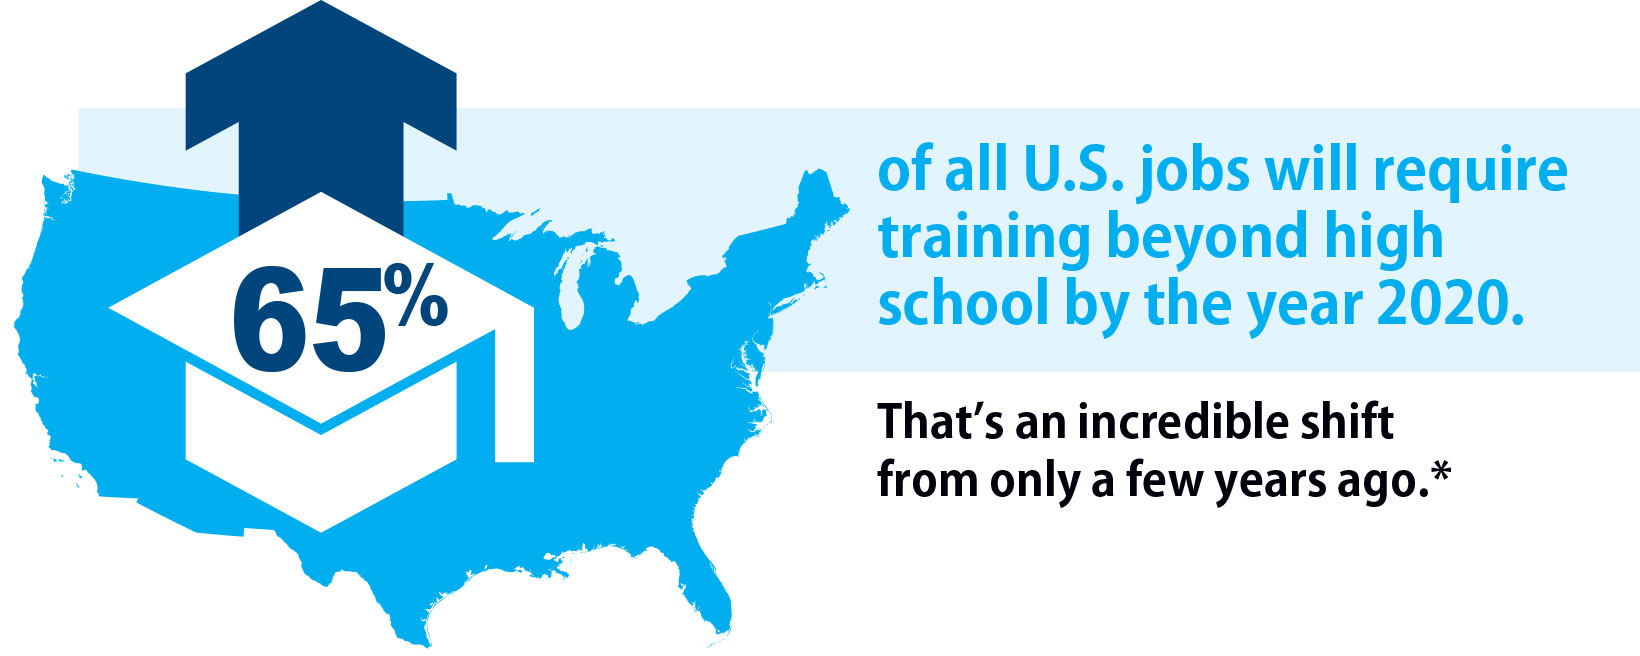 65% of all U.S. jobs will require training beyond high school by the 2020. That's an incredible shift from only a few years ago.